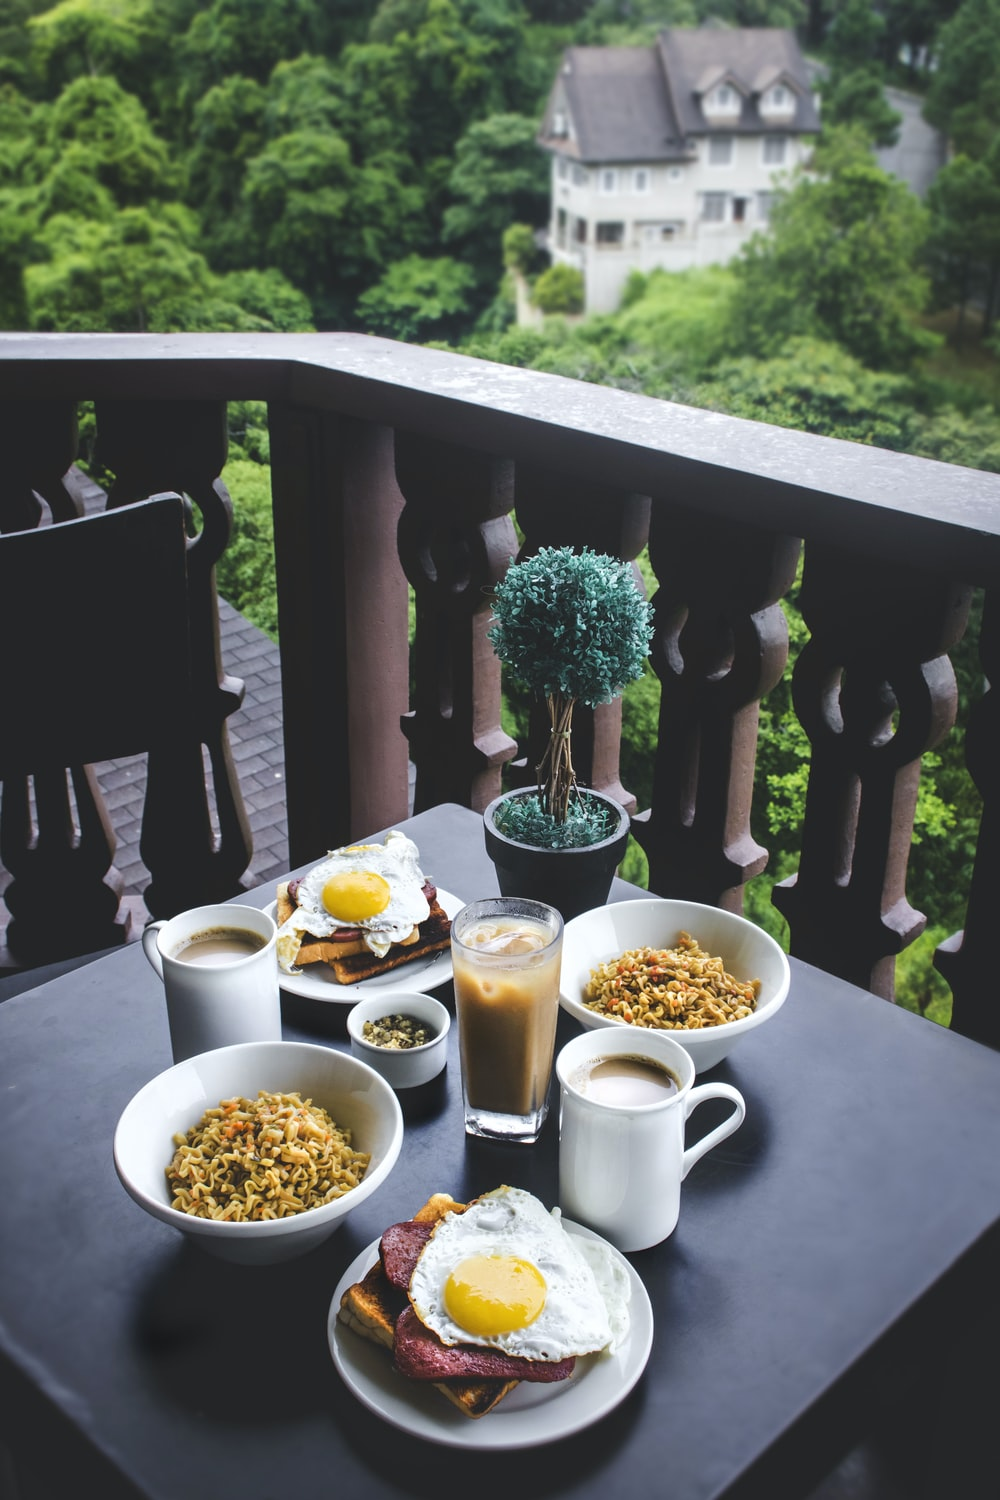 breakfast placed on table at terrace